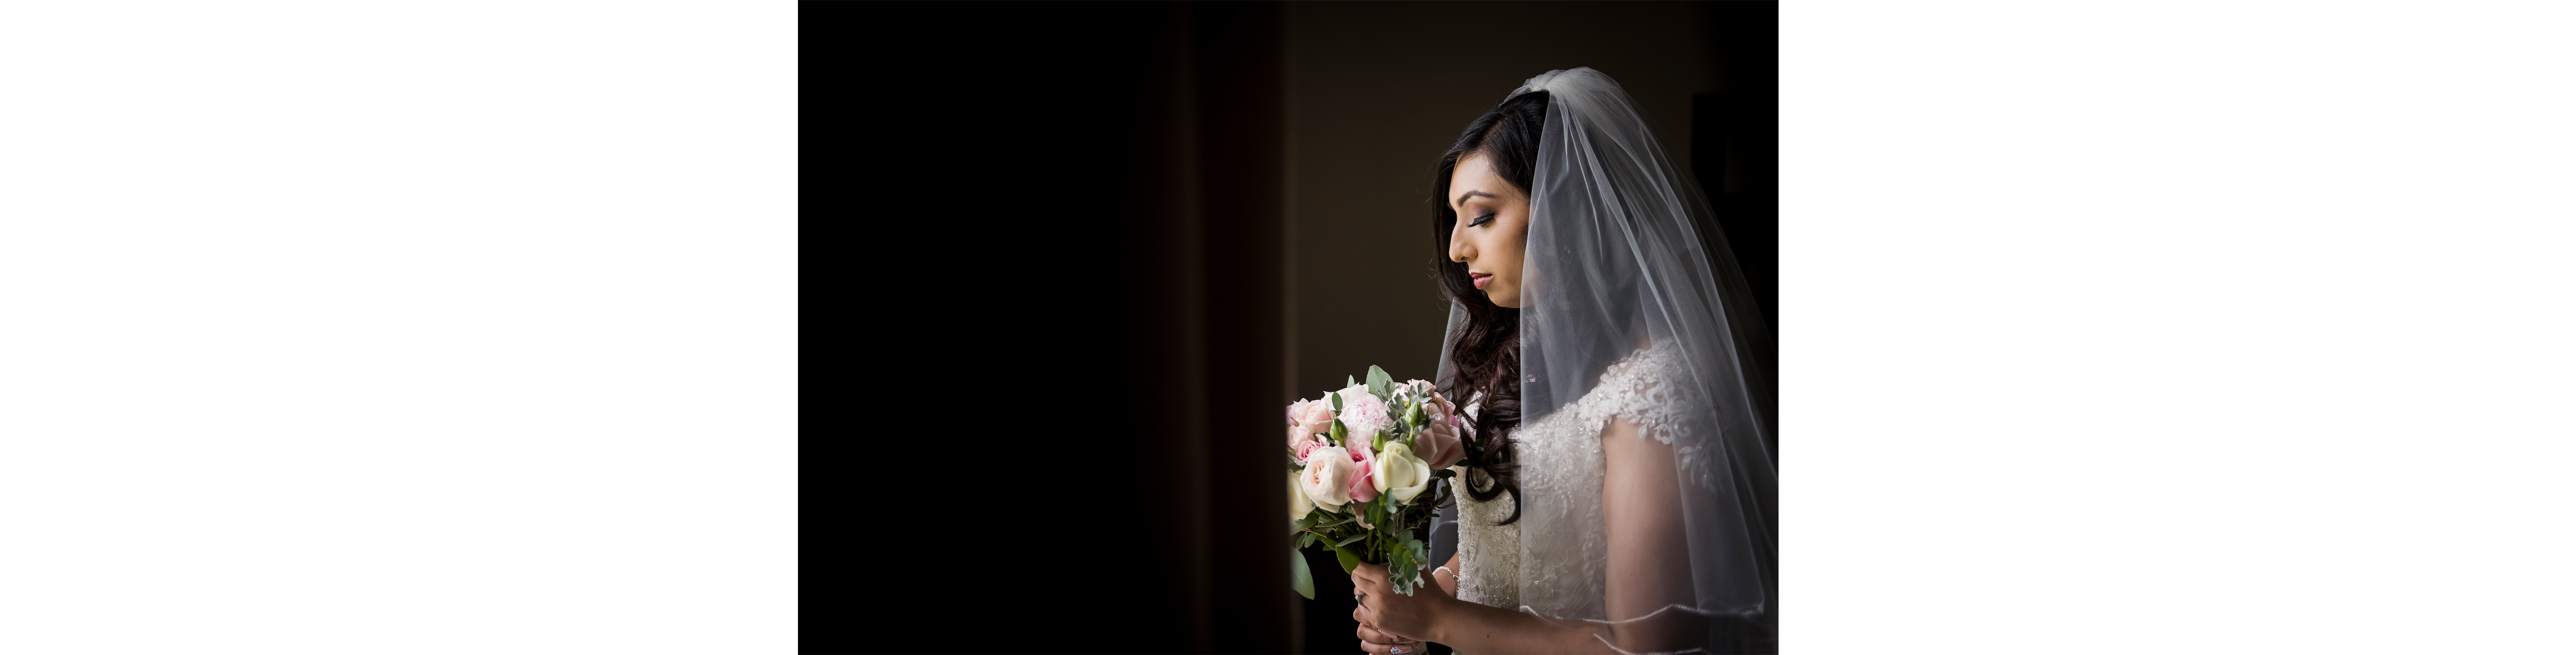 Bride-with-bouquet